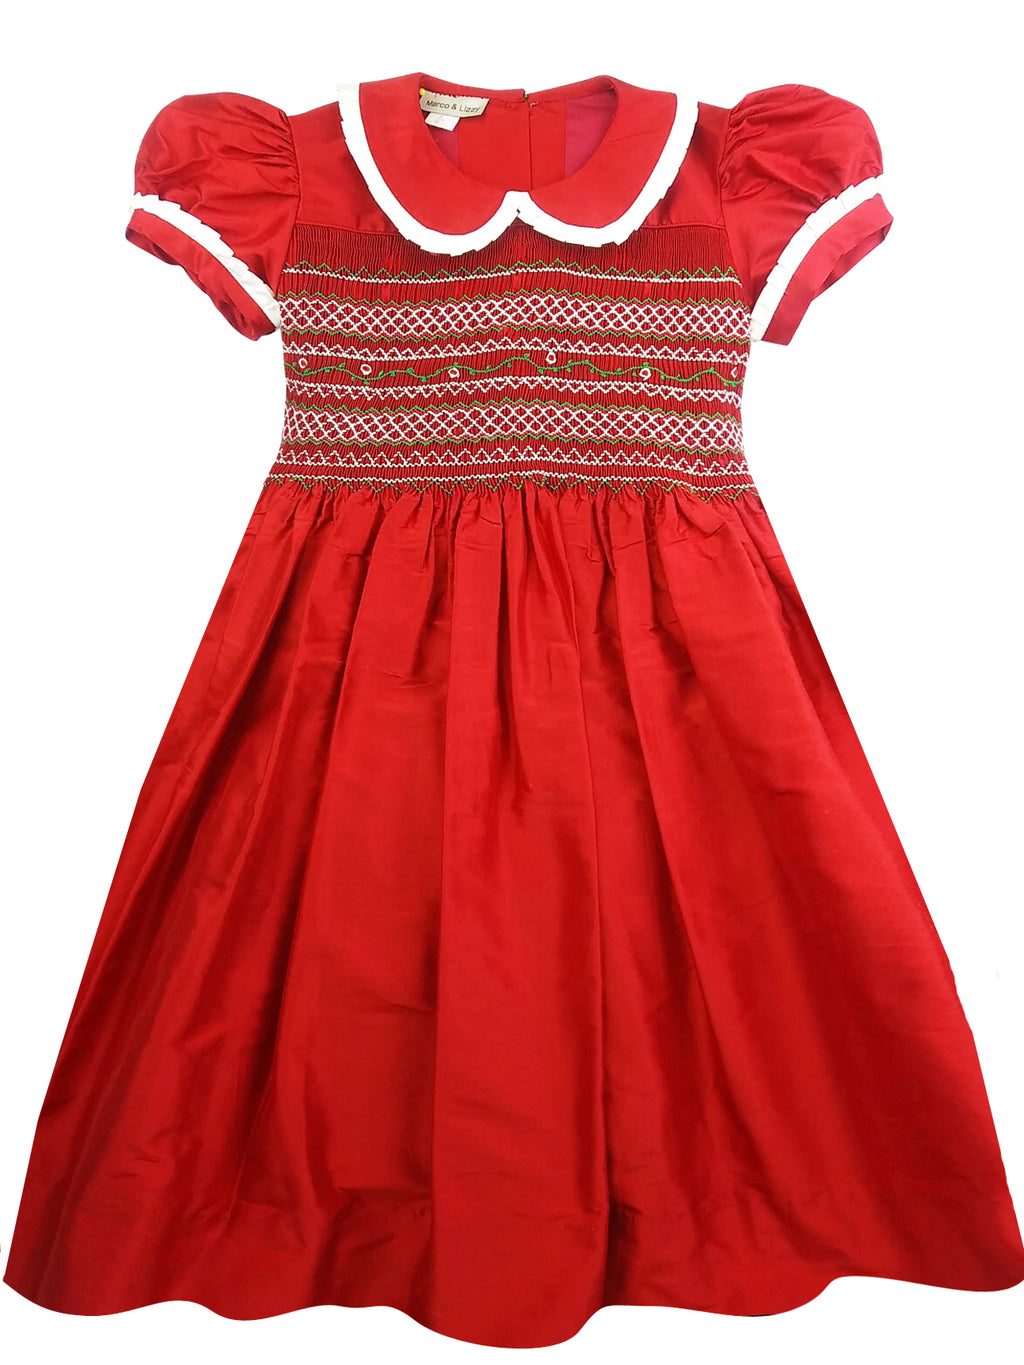 Red Silk hand Smocked dress - Little Threads Inc. Children's Clothing